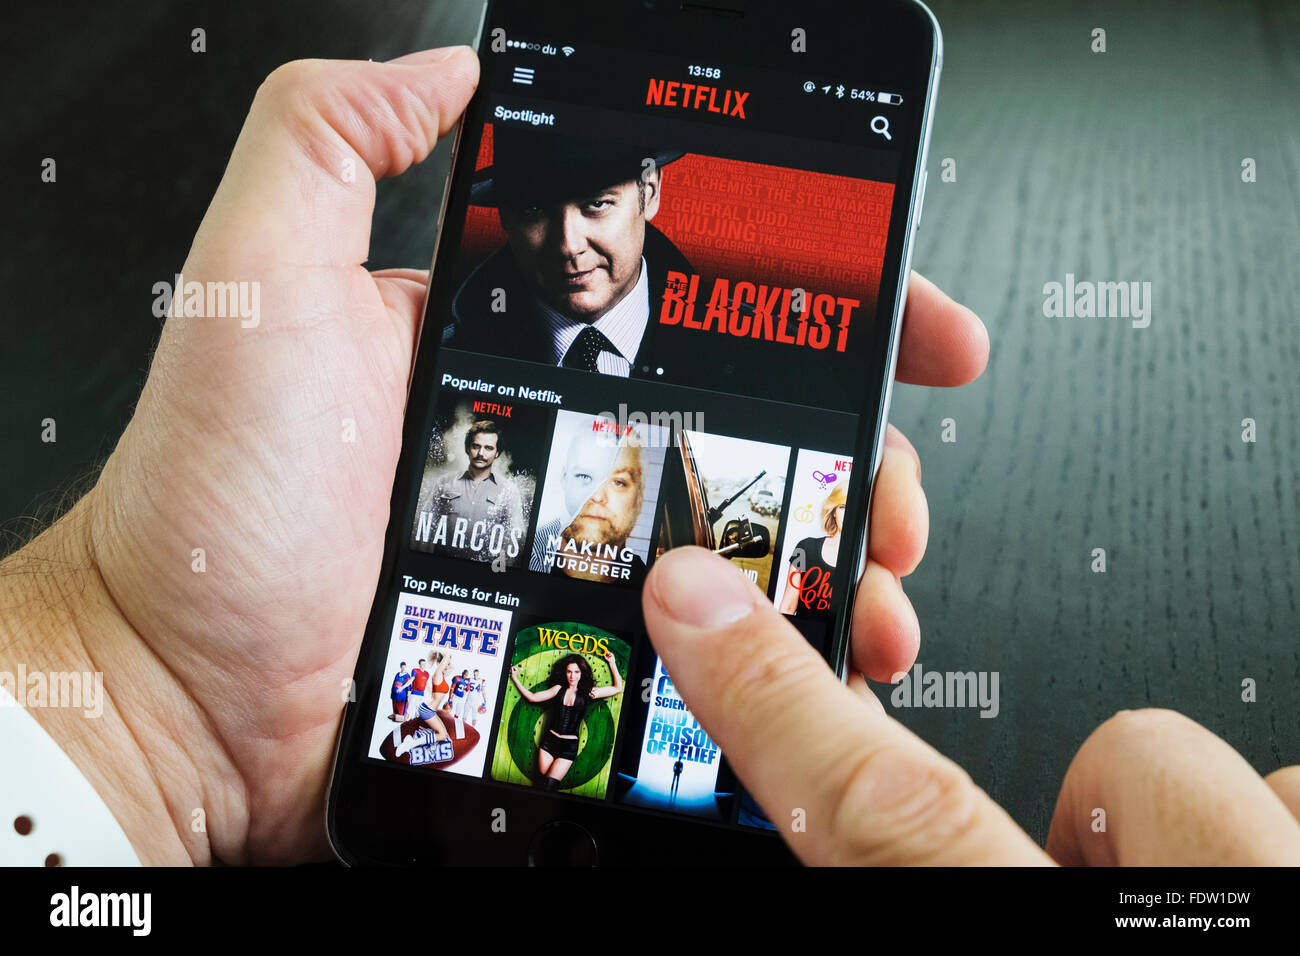 Homepage di Netflix on-demand di filmati e programmi TV streaming service app su iPhone 6 plus smart phone Immagini Stock